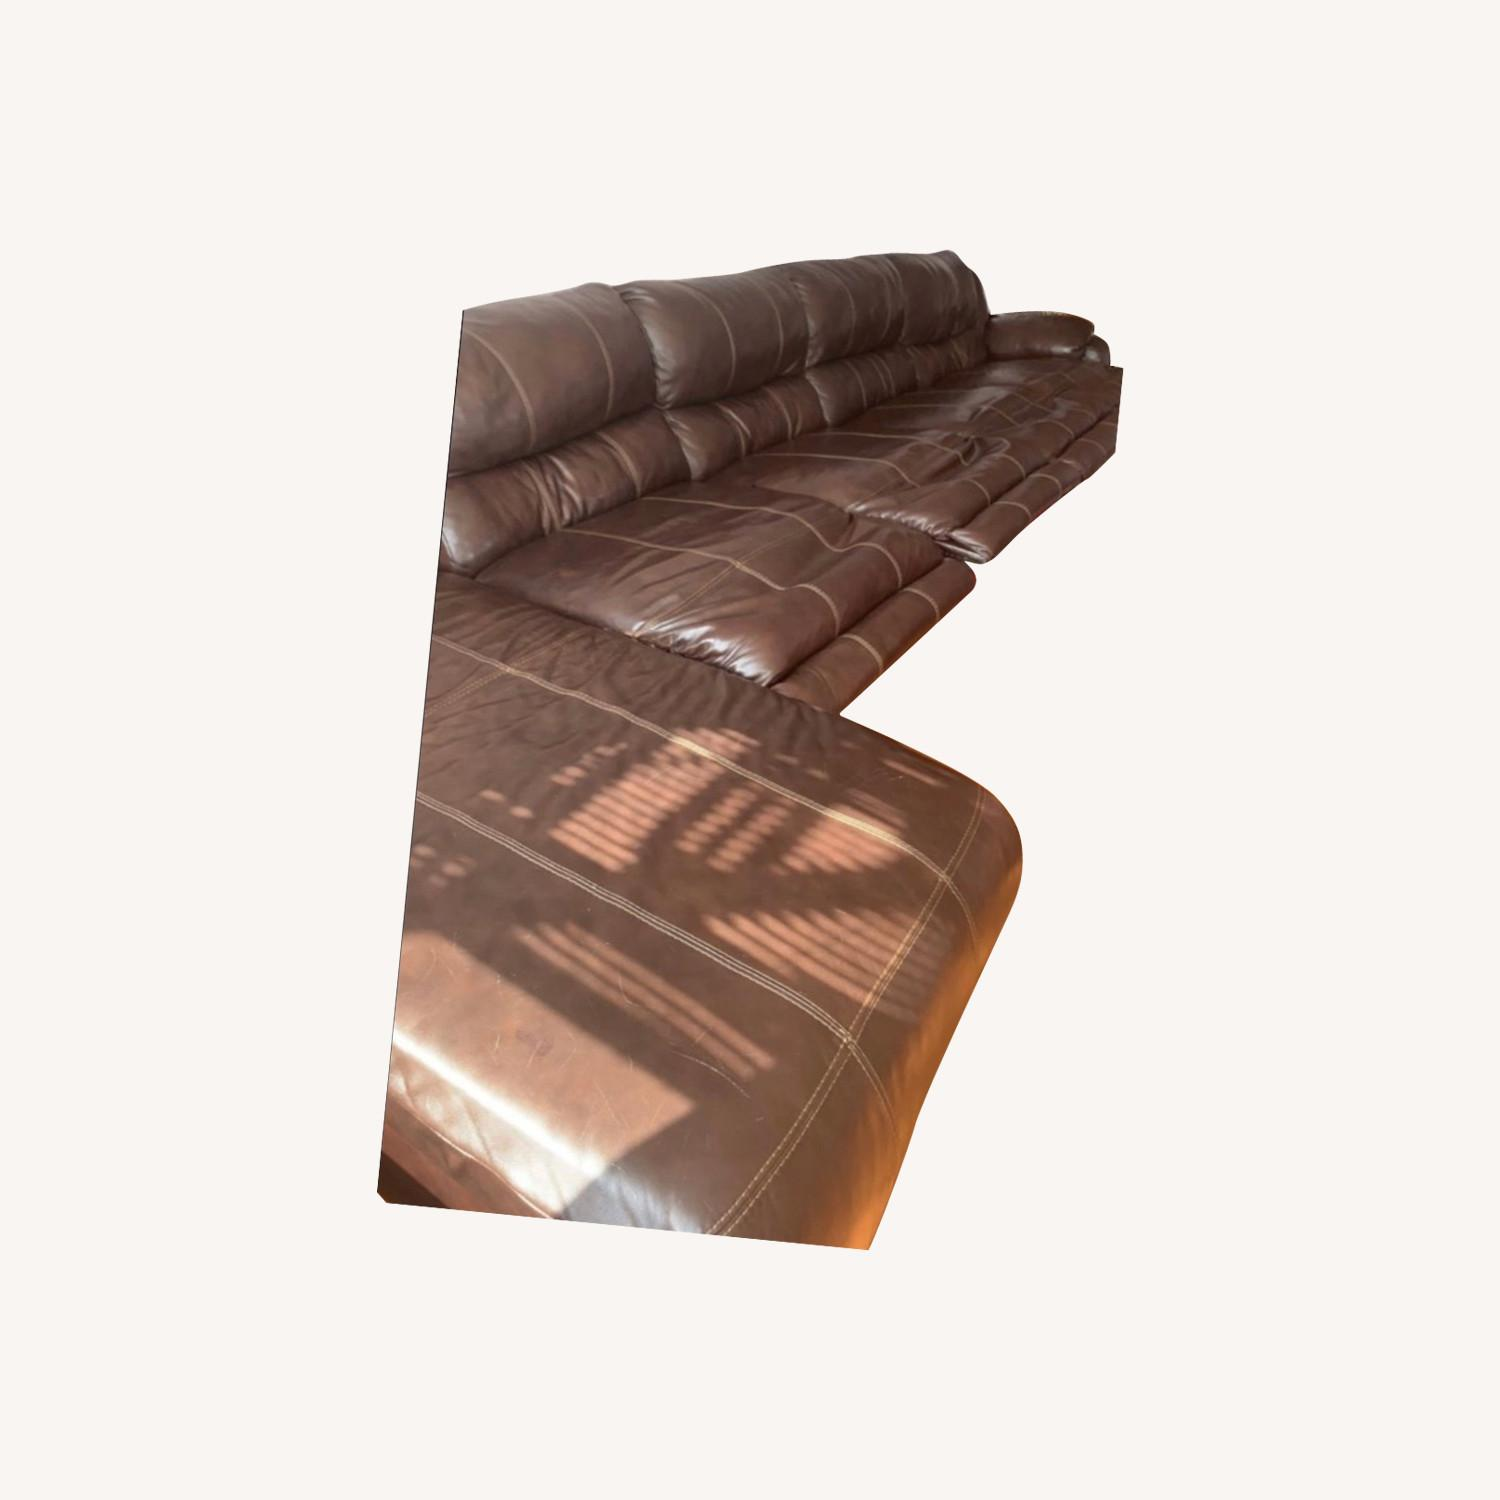 Ashley Furniture Huge Couch with 4 Recliners - image-0